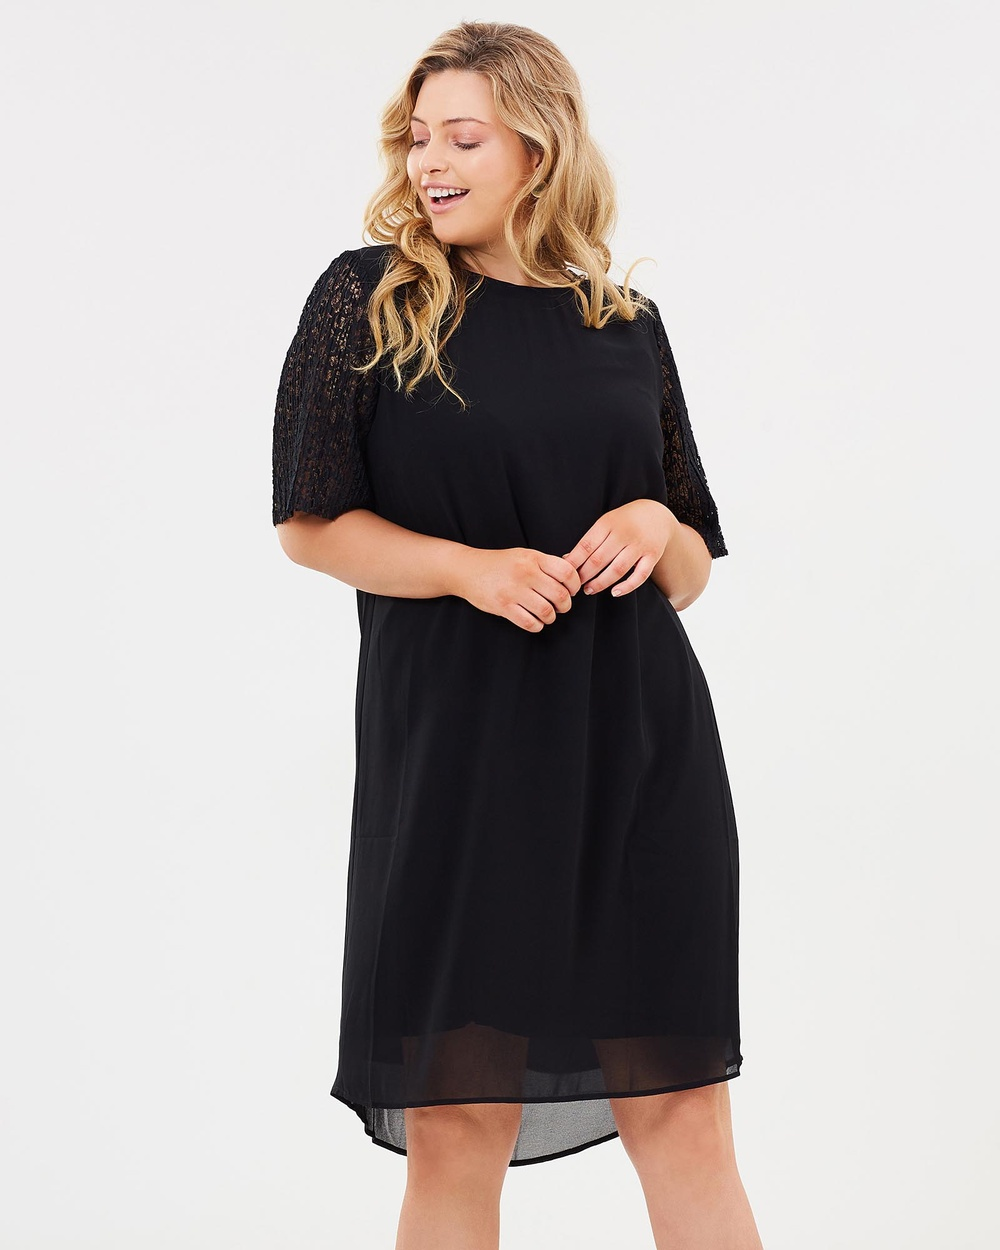 Advocado Plus Boxy Lace Sleeve Dress Dresses Black Boxy Lace Sleeve Dress